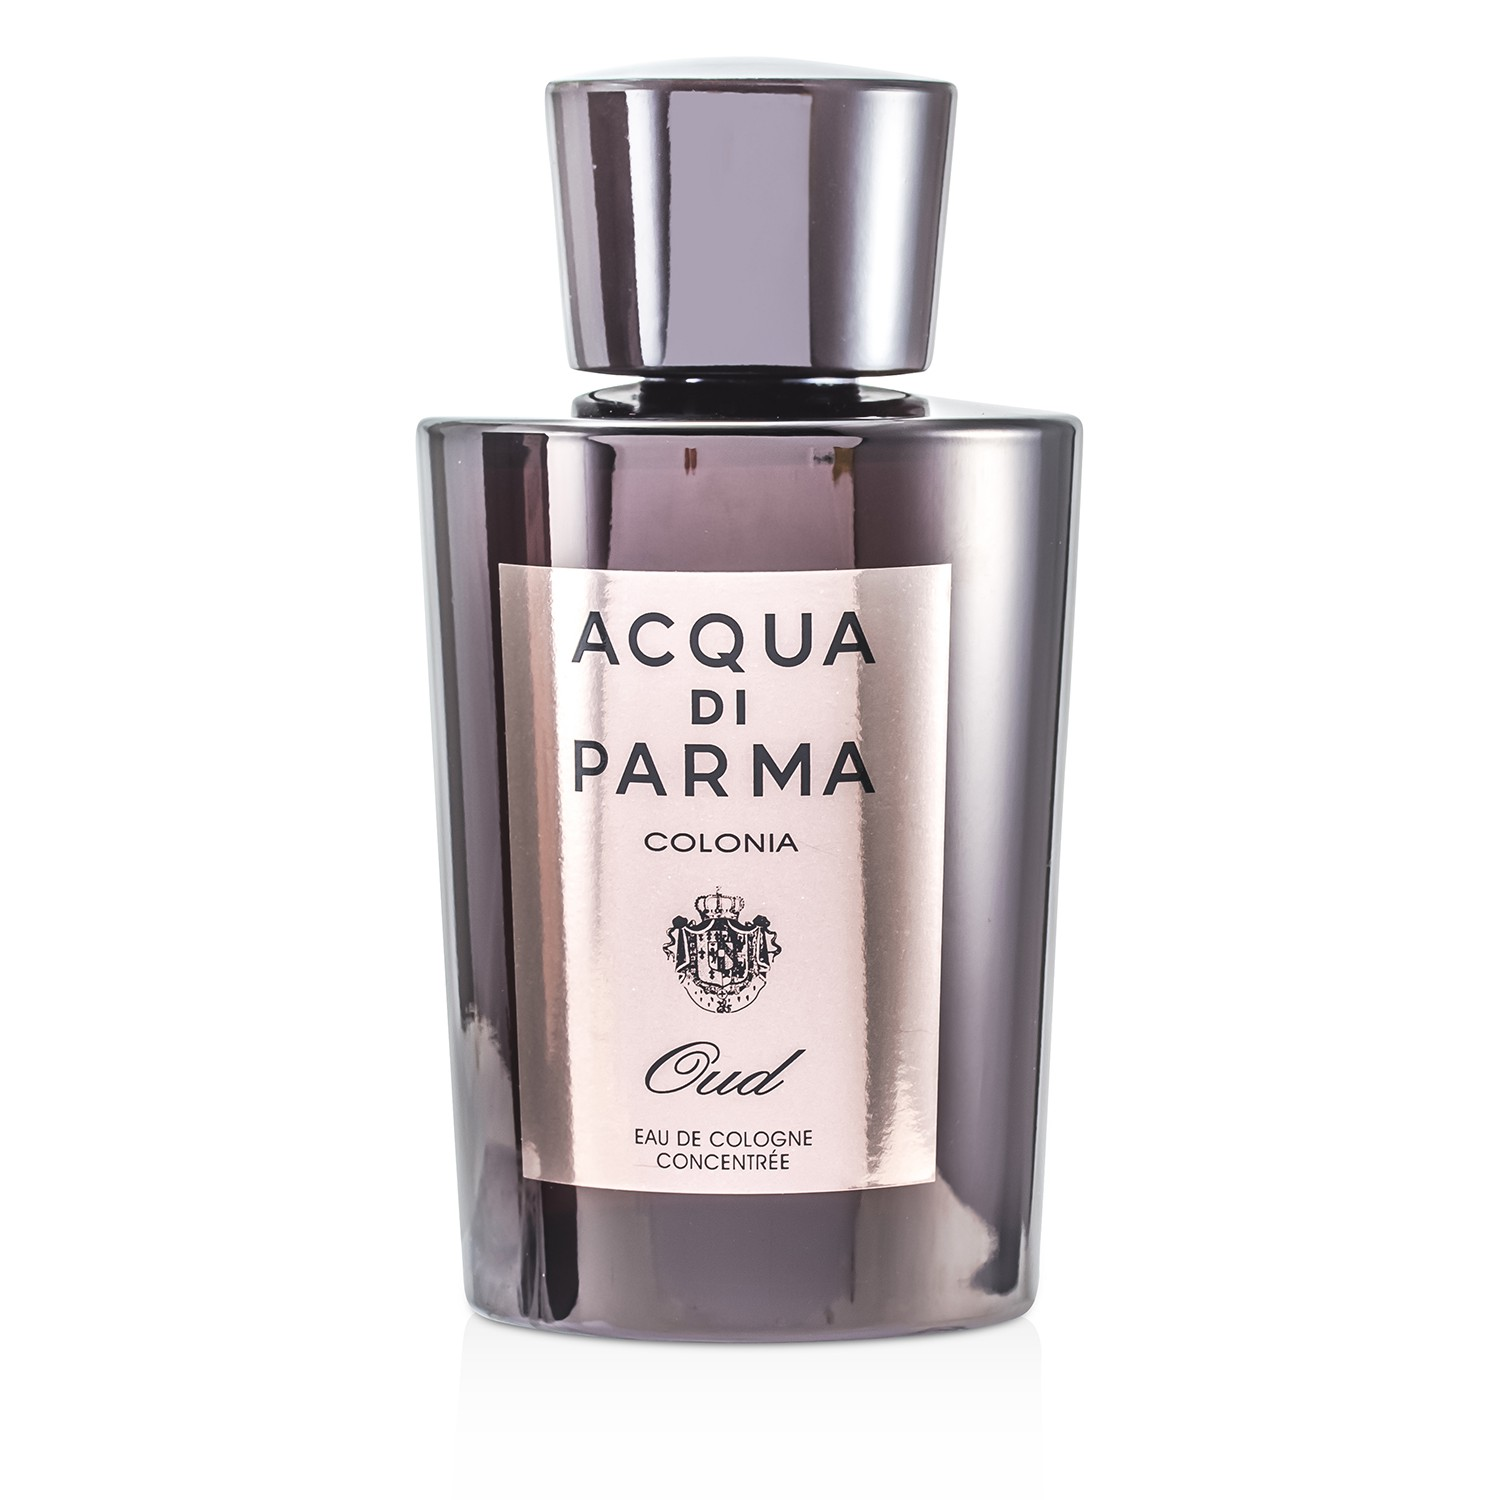 Acqua-Di-Parma-Colonia-Oud-Eau-De-Cologne-Concentree-Spray